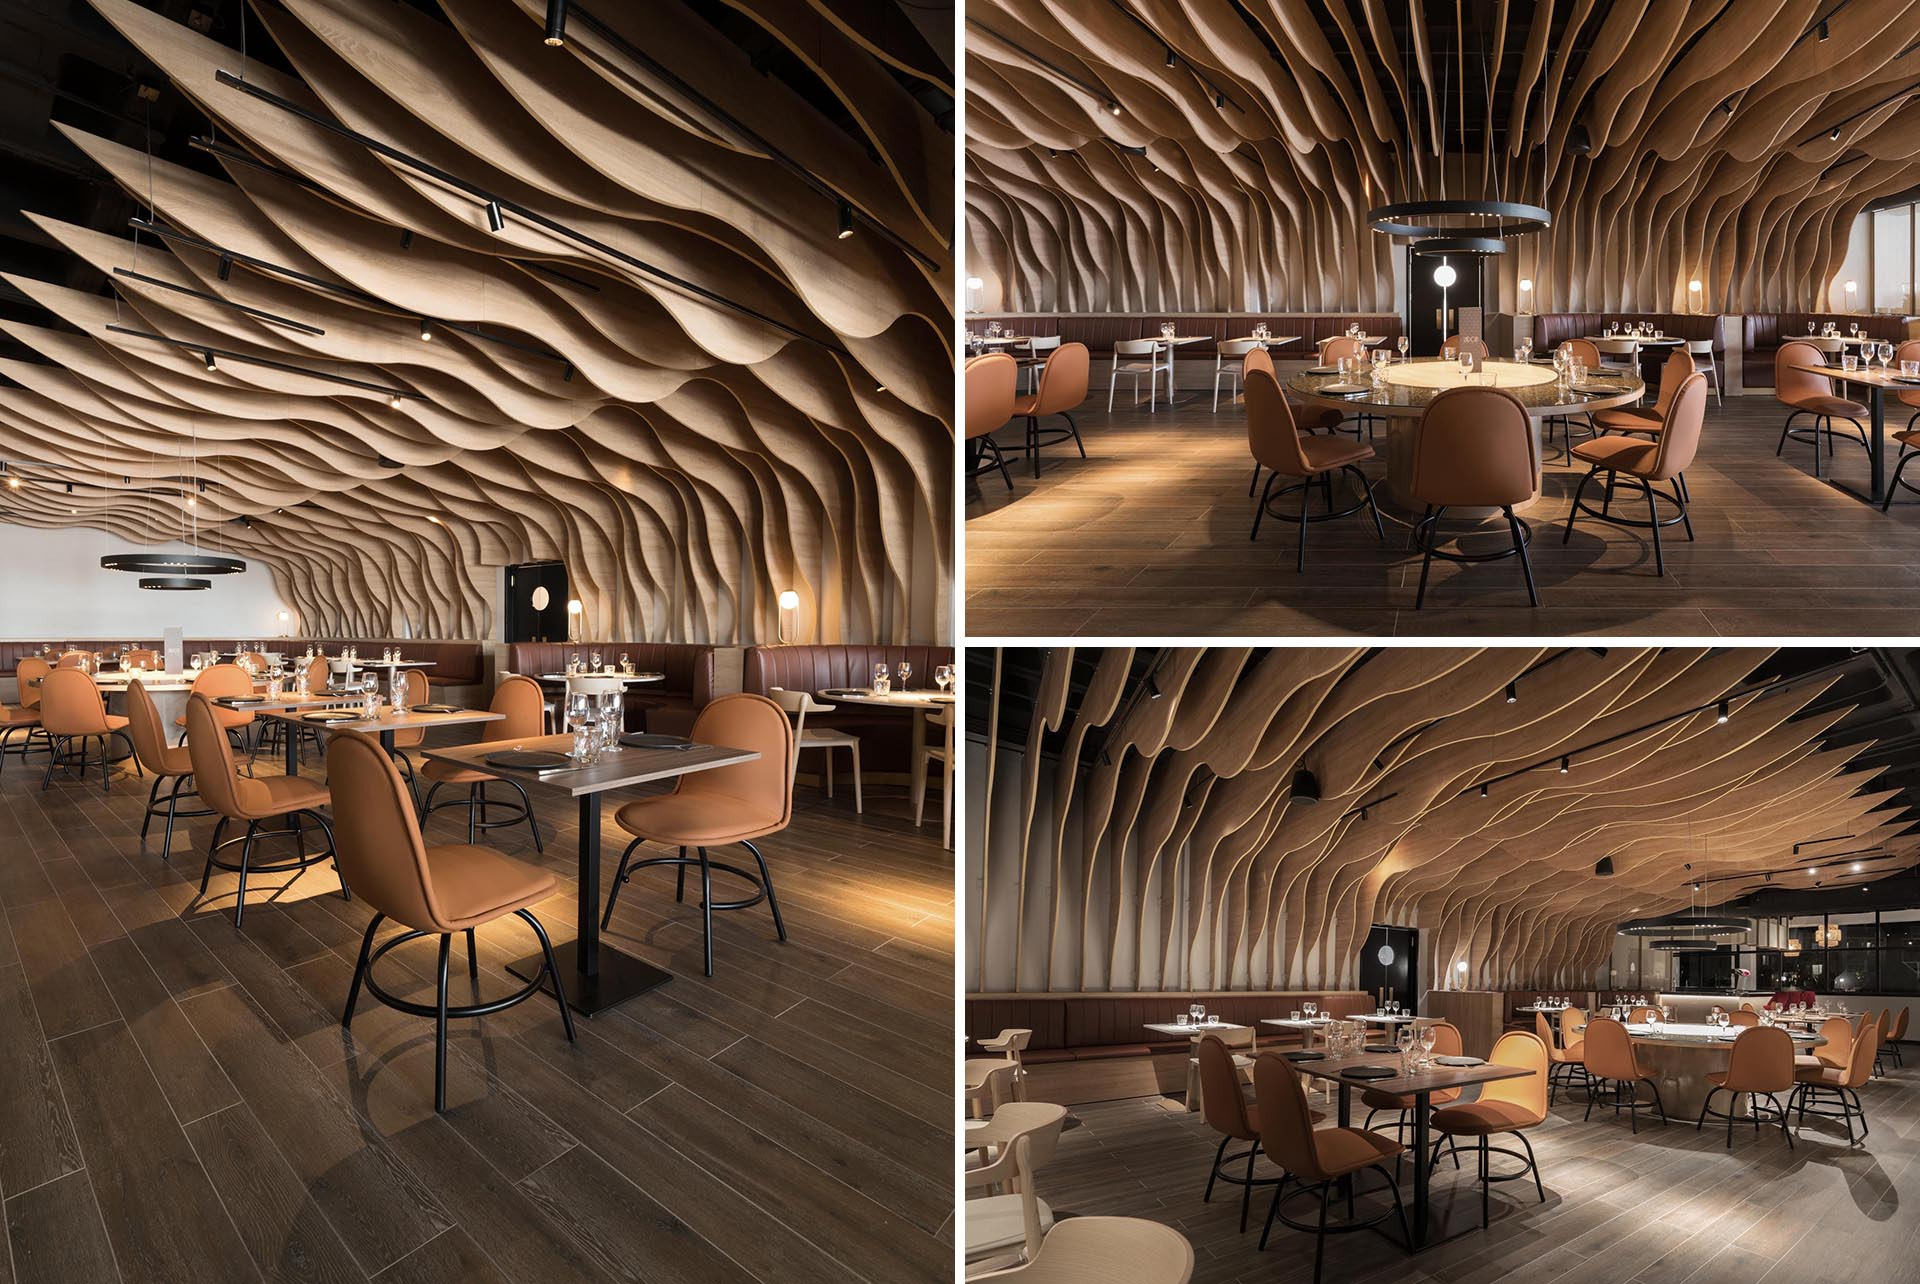 A modern restaurant with wood fins that cover the walls and ceiling.